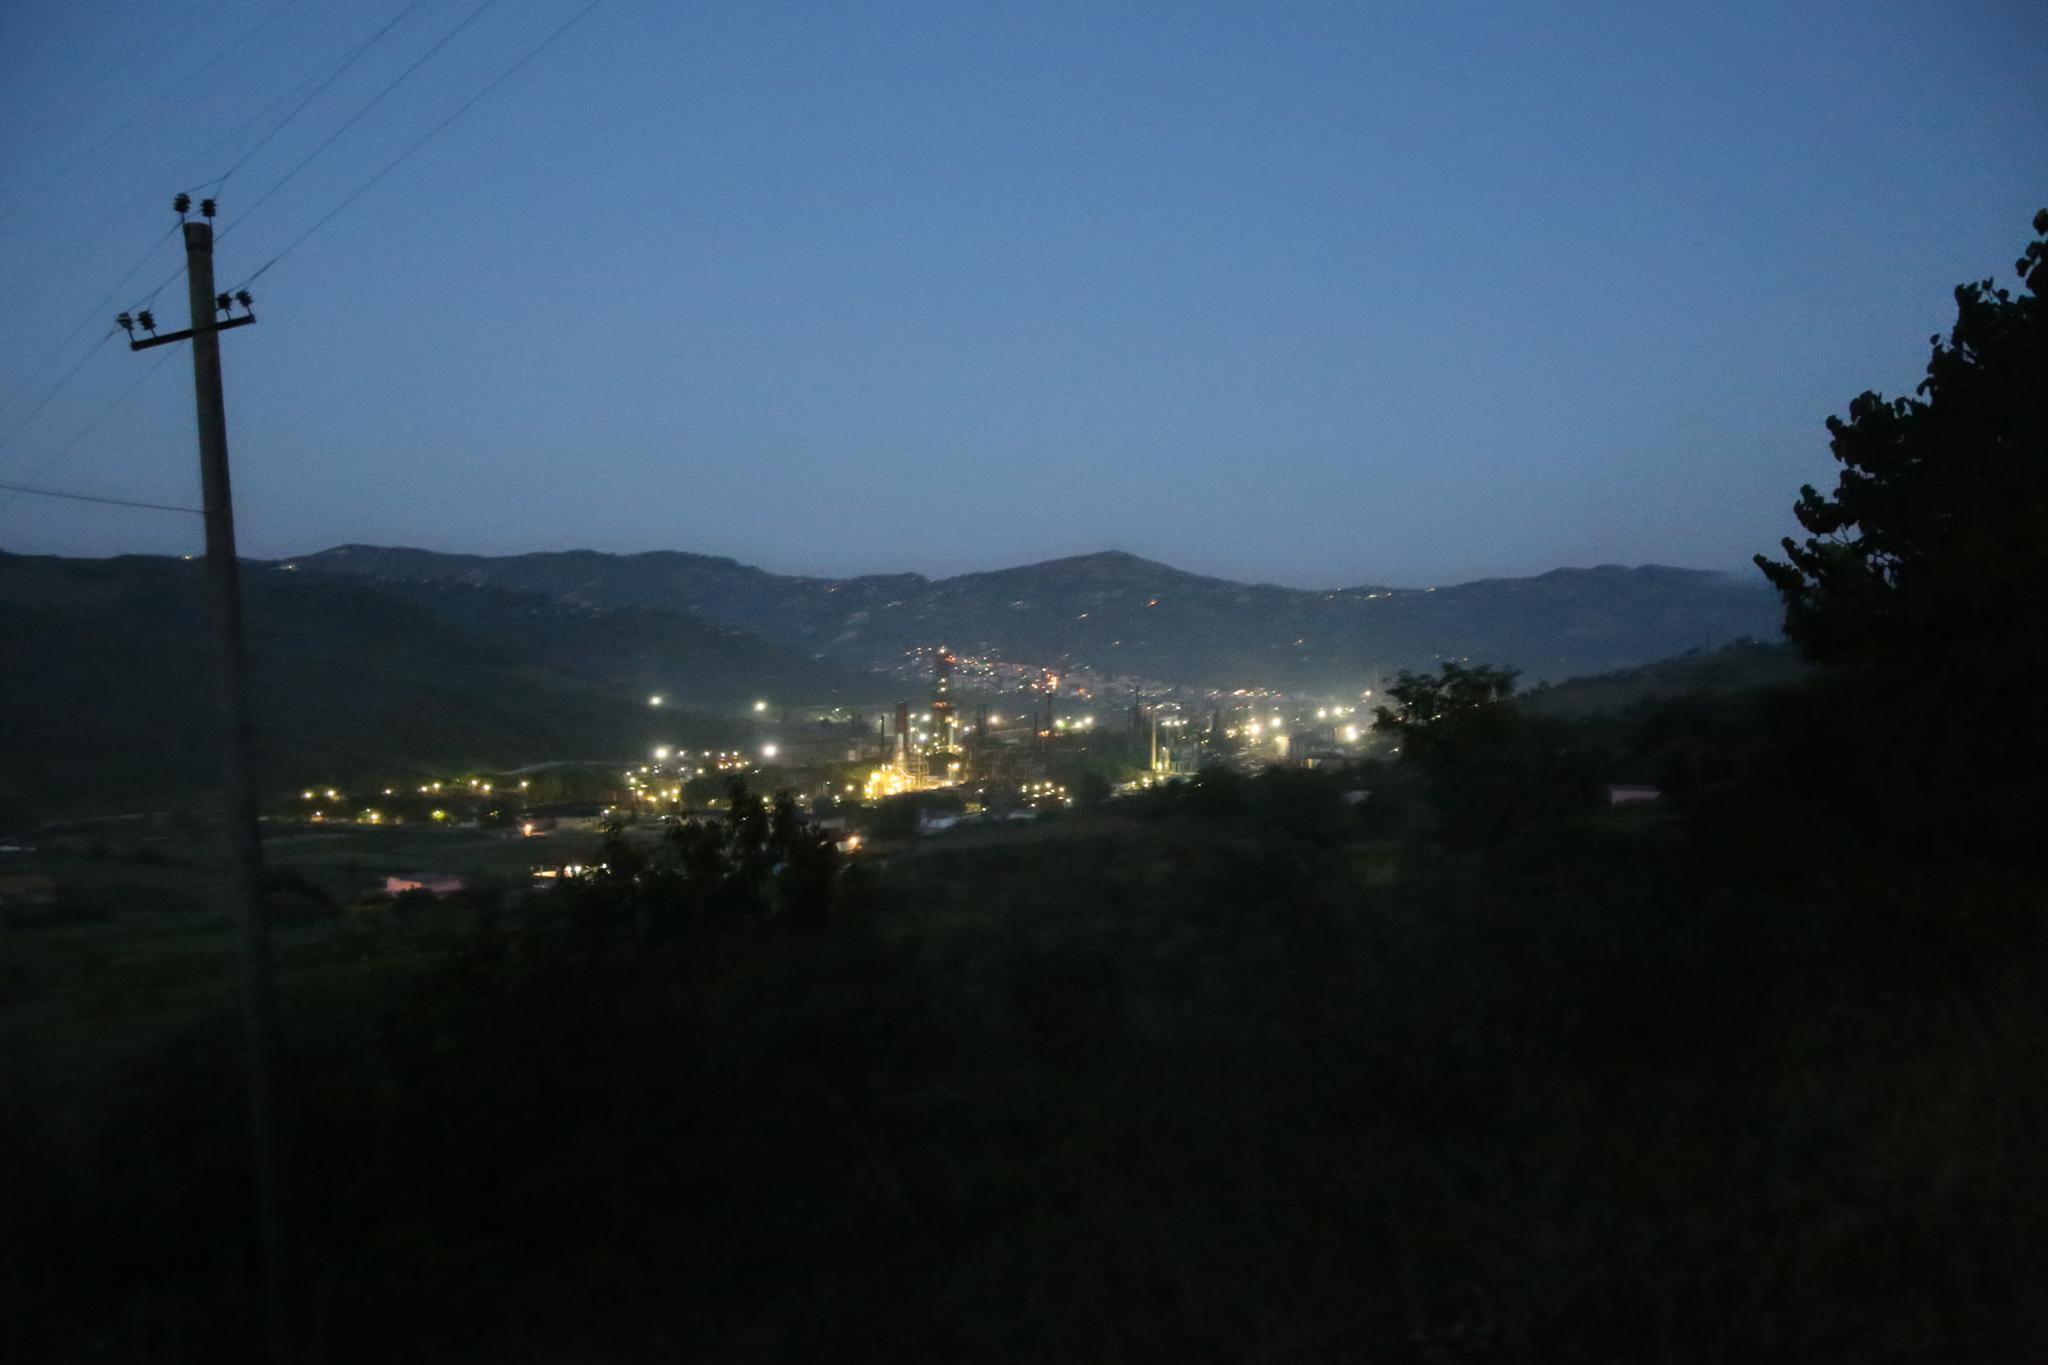 Untitled by gjinoproduction